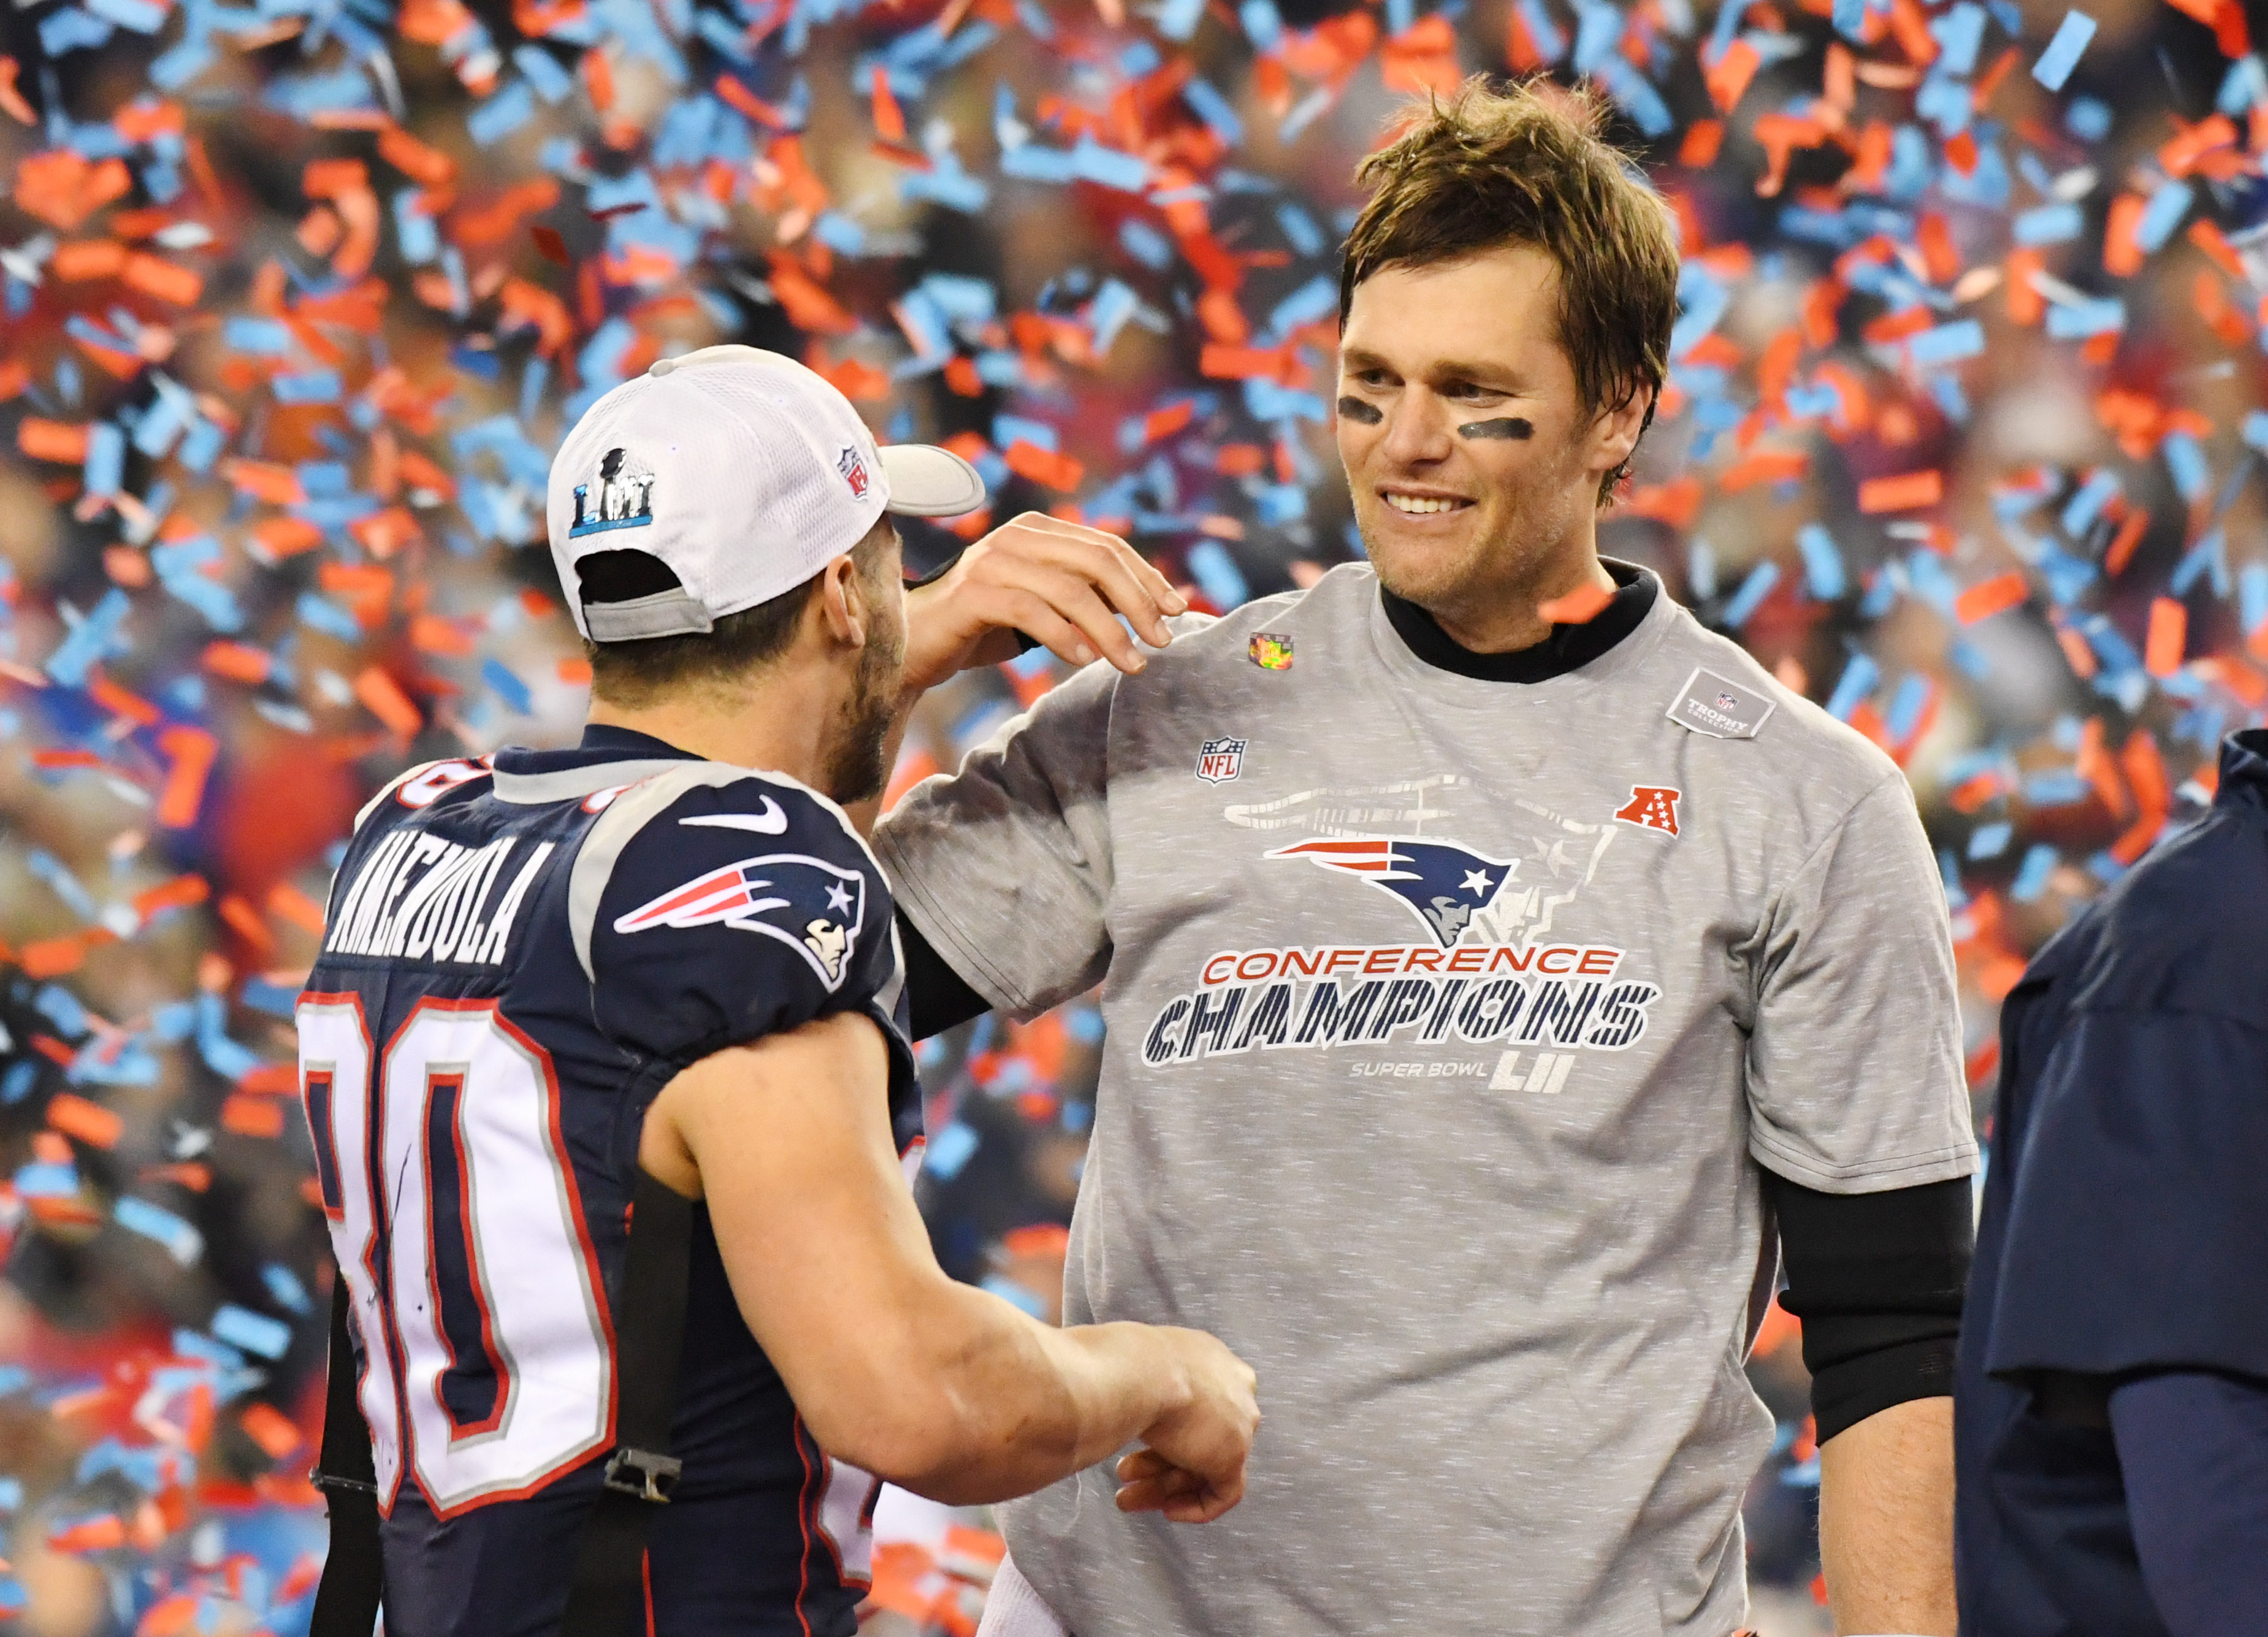 Tom Brady Excited To Play Super Bowl In Minnesota